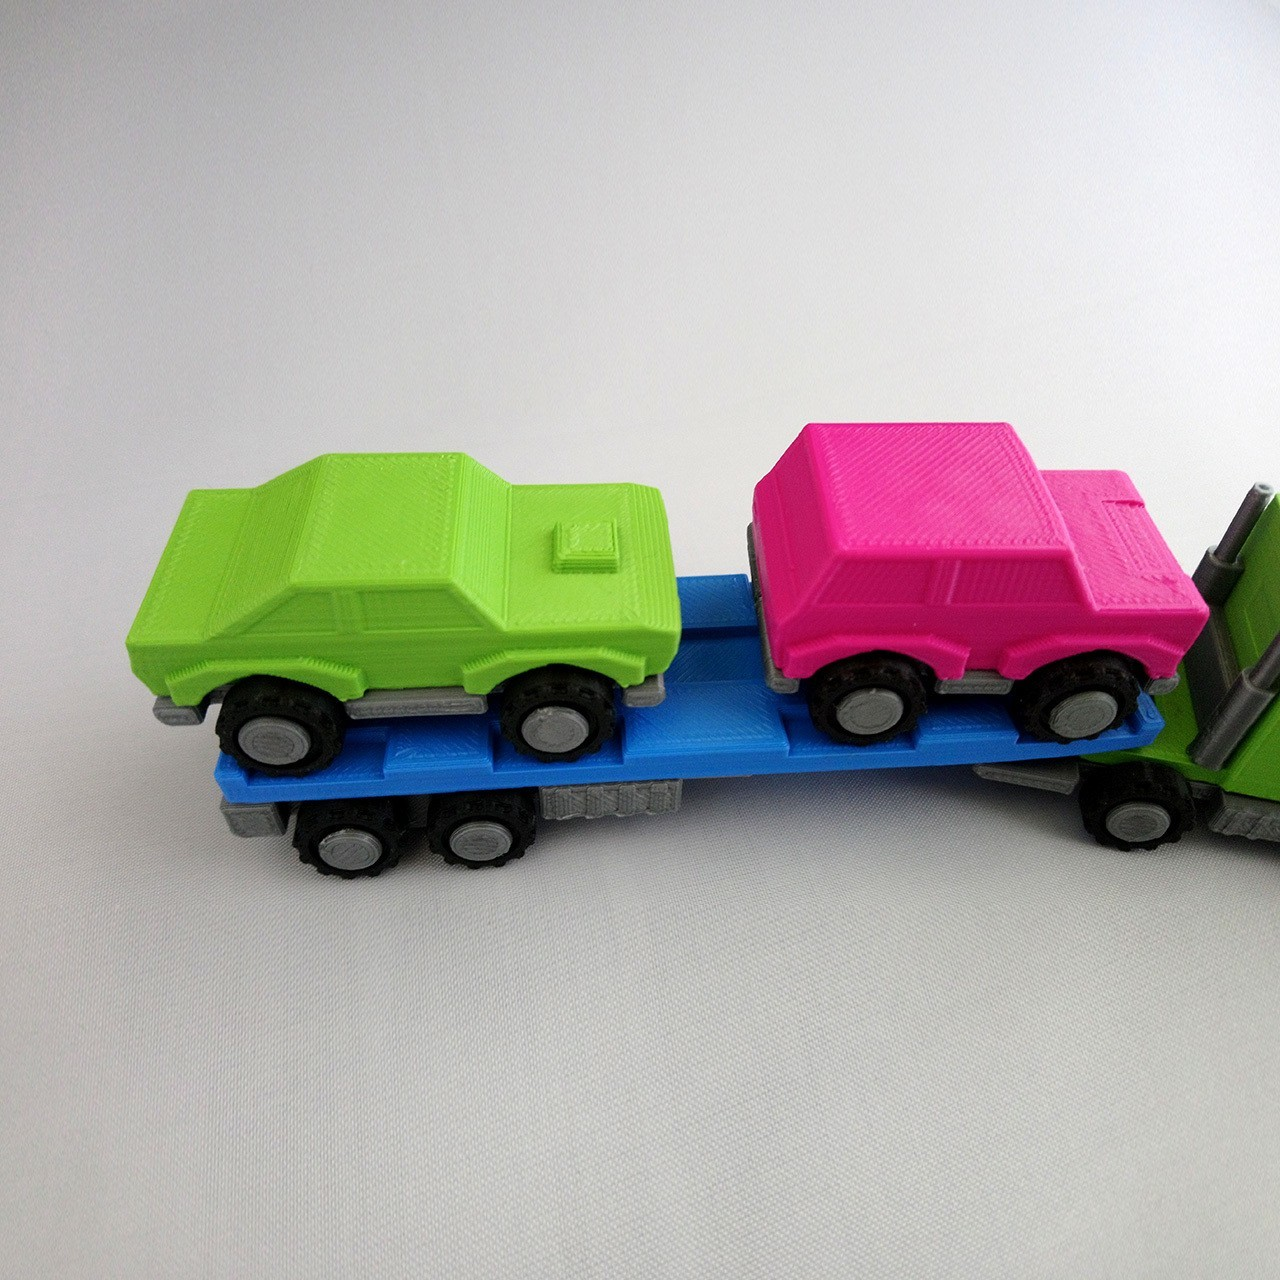 SmallToys-EuropeanTruck05.jpg Download STL file SmallToys - Trucks and trailers pack • Design to 3D print, Wabby